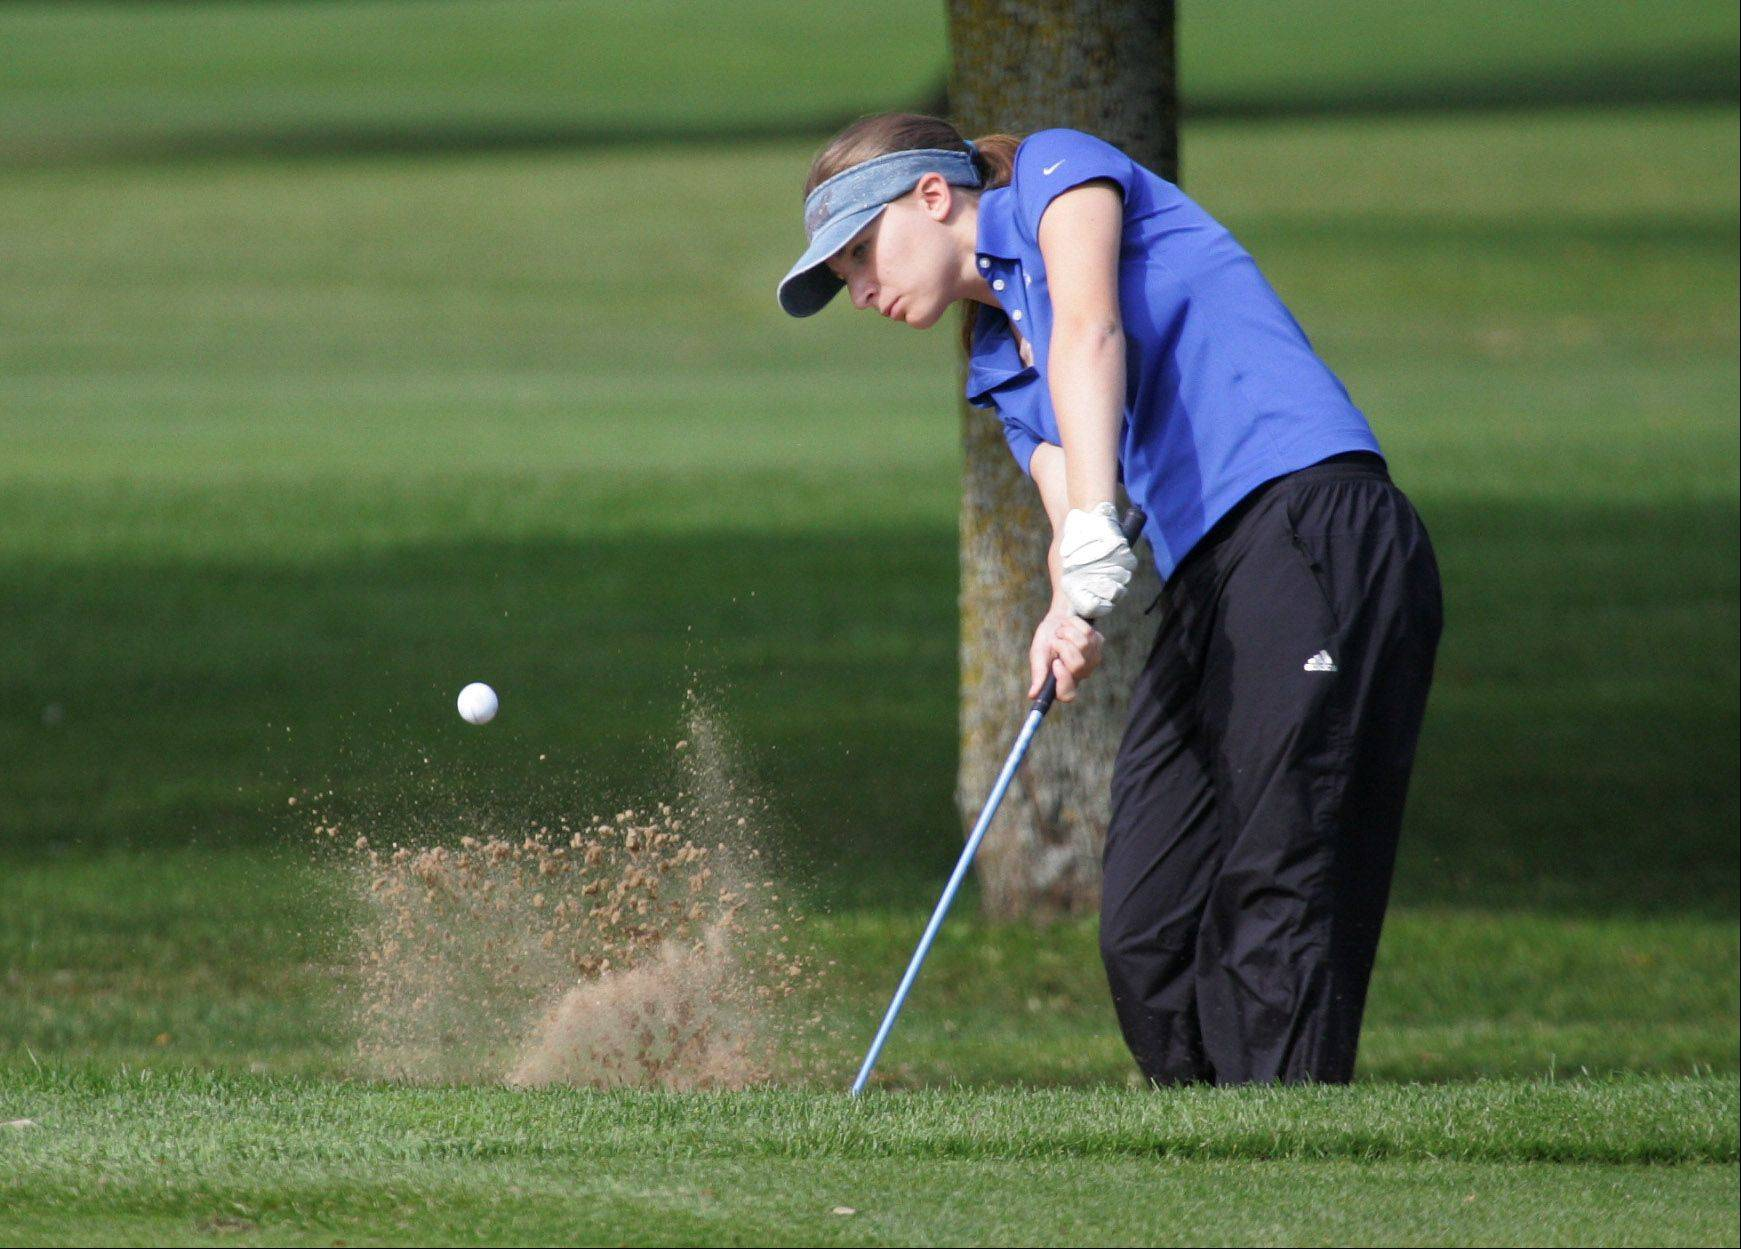 Lake Zurich golfer Melissa Uhl hits out of the sand on the 6th hole during the North Suburban Conference girls golf tournament Tuesday at Deerpath Golf Course in Lake Forest.